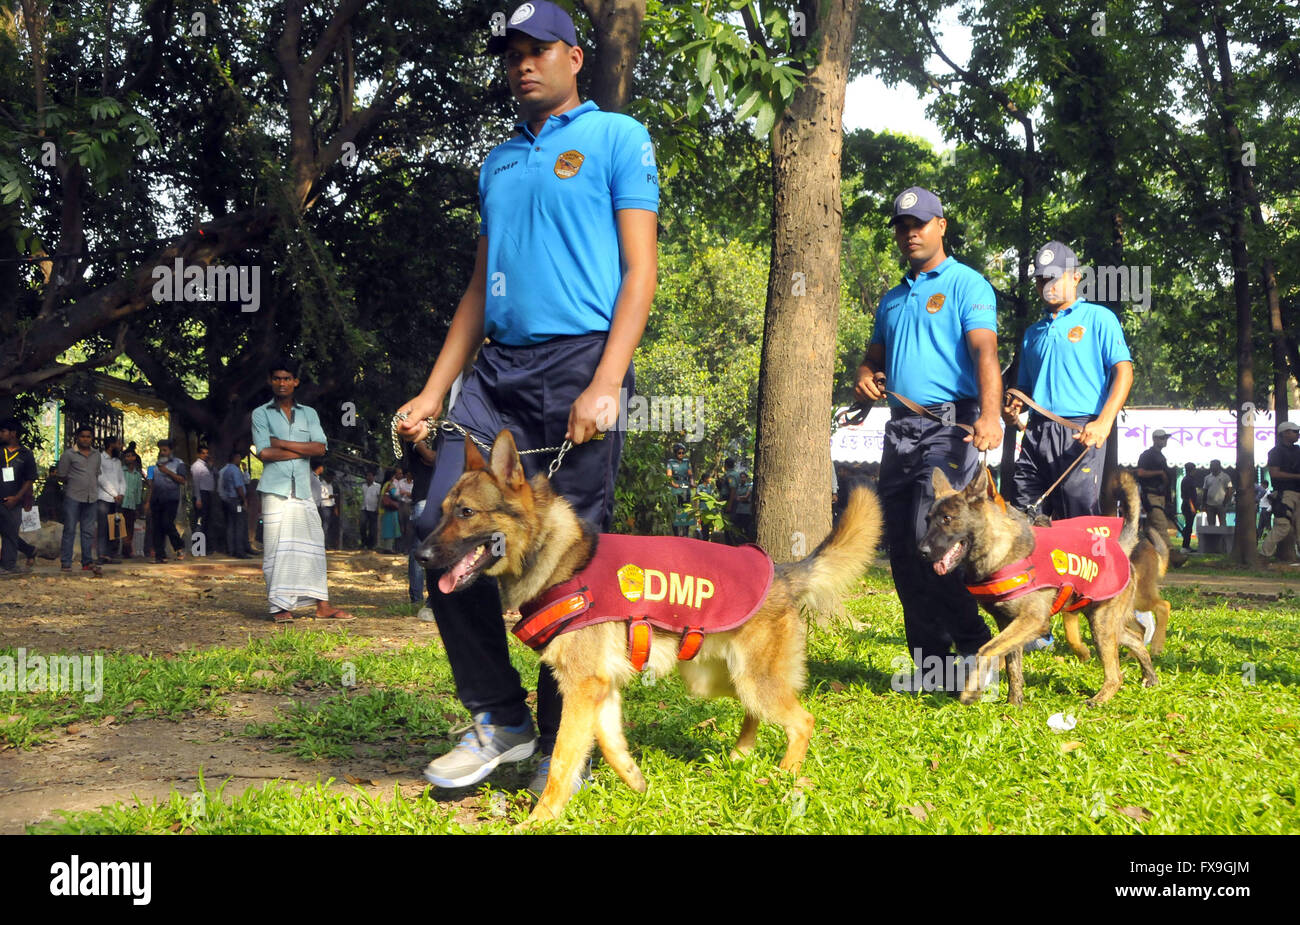 Dhaka, Bangladesh. 13th Apr, 2016. Security forces patrol with dogs ahead of the upcoming Bengali New Year in Dhaka, - Stock Image